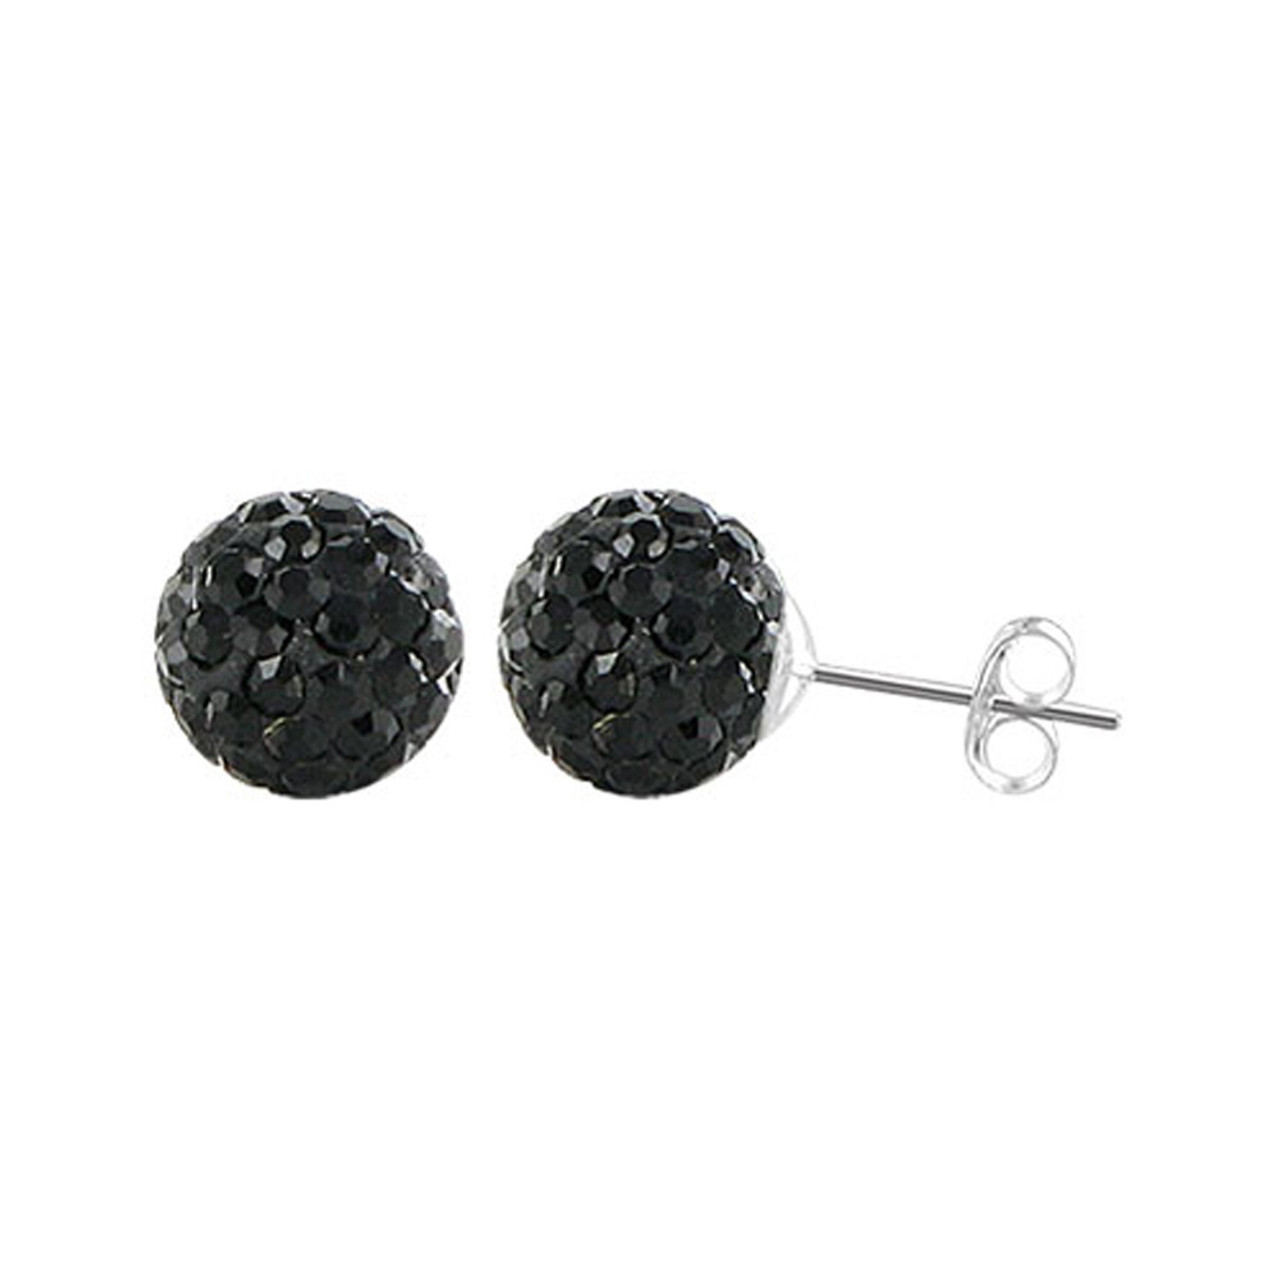 8mm Round Black Crystal Ball Stud Earrings